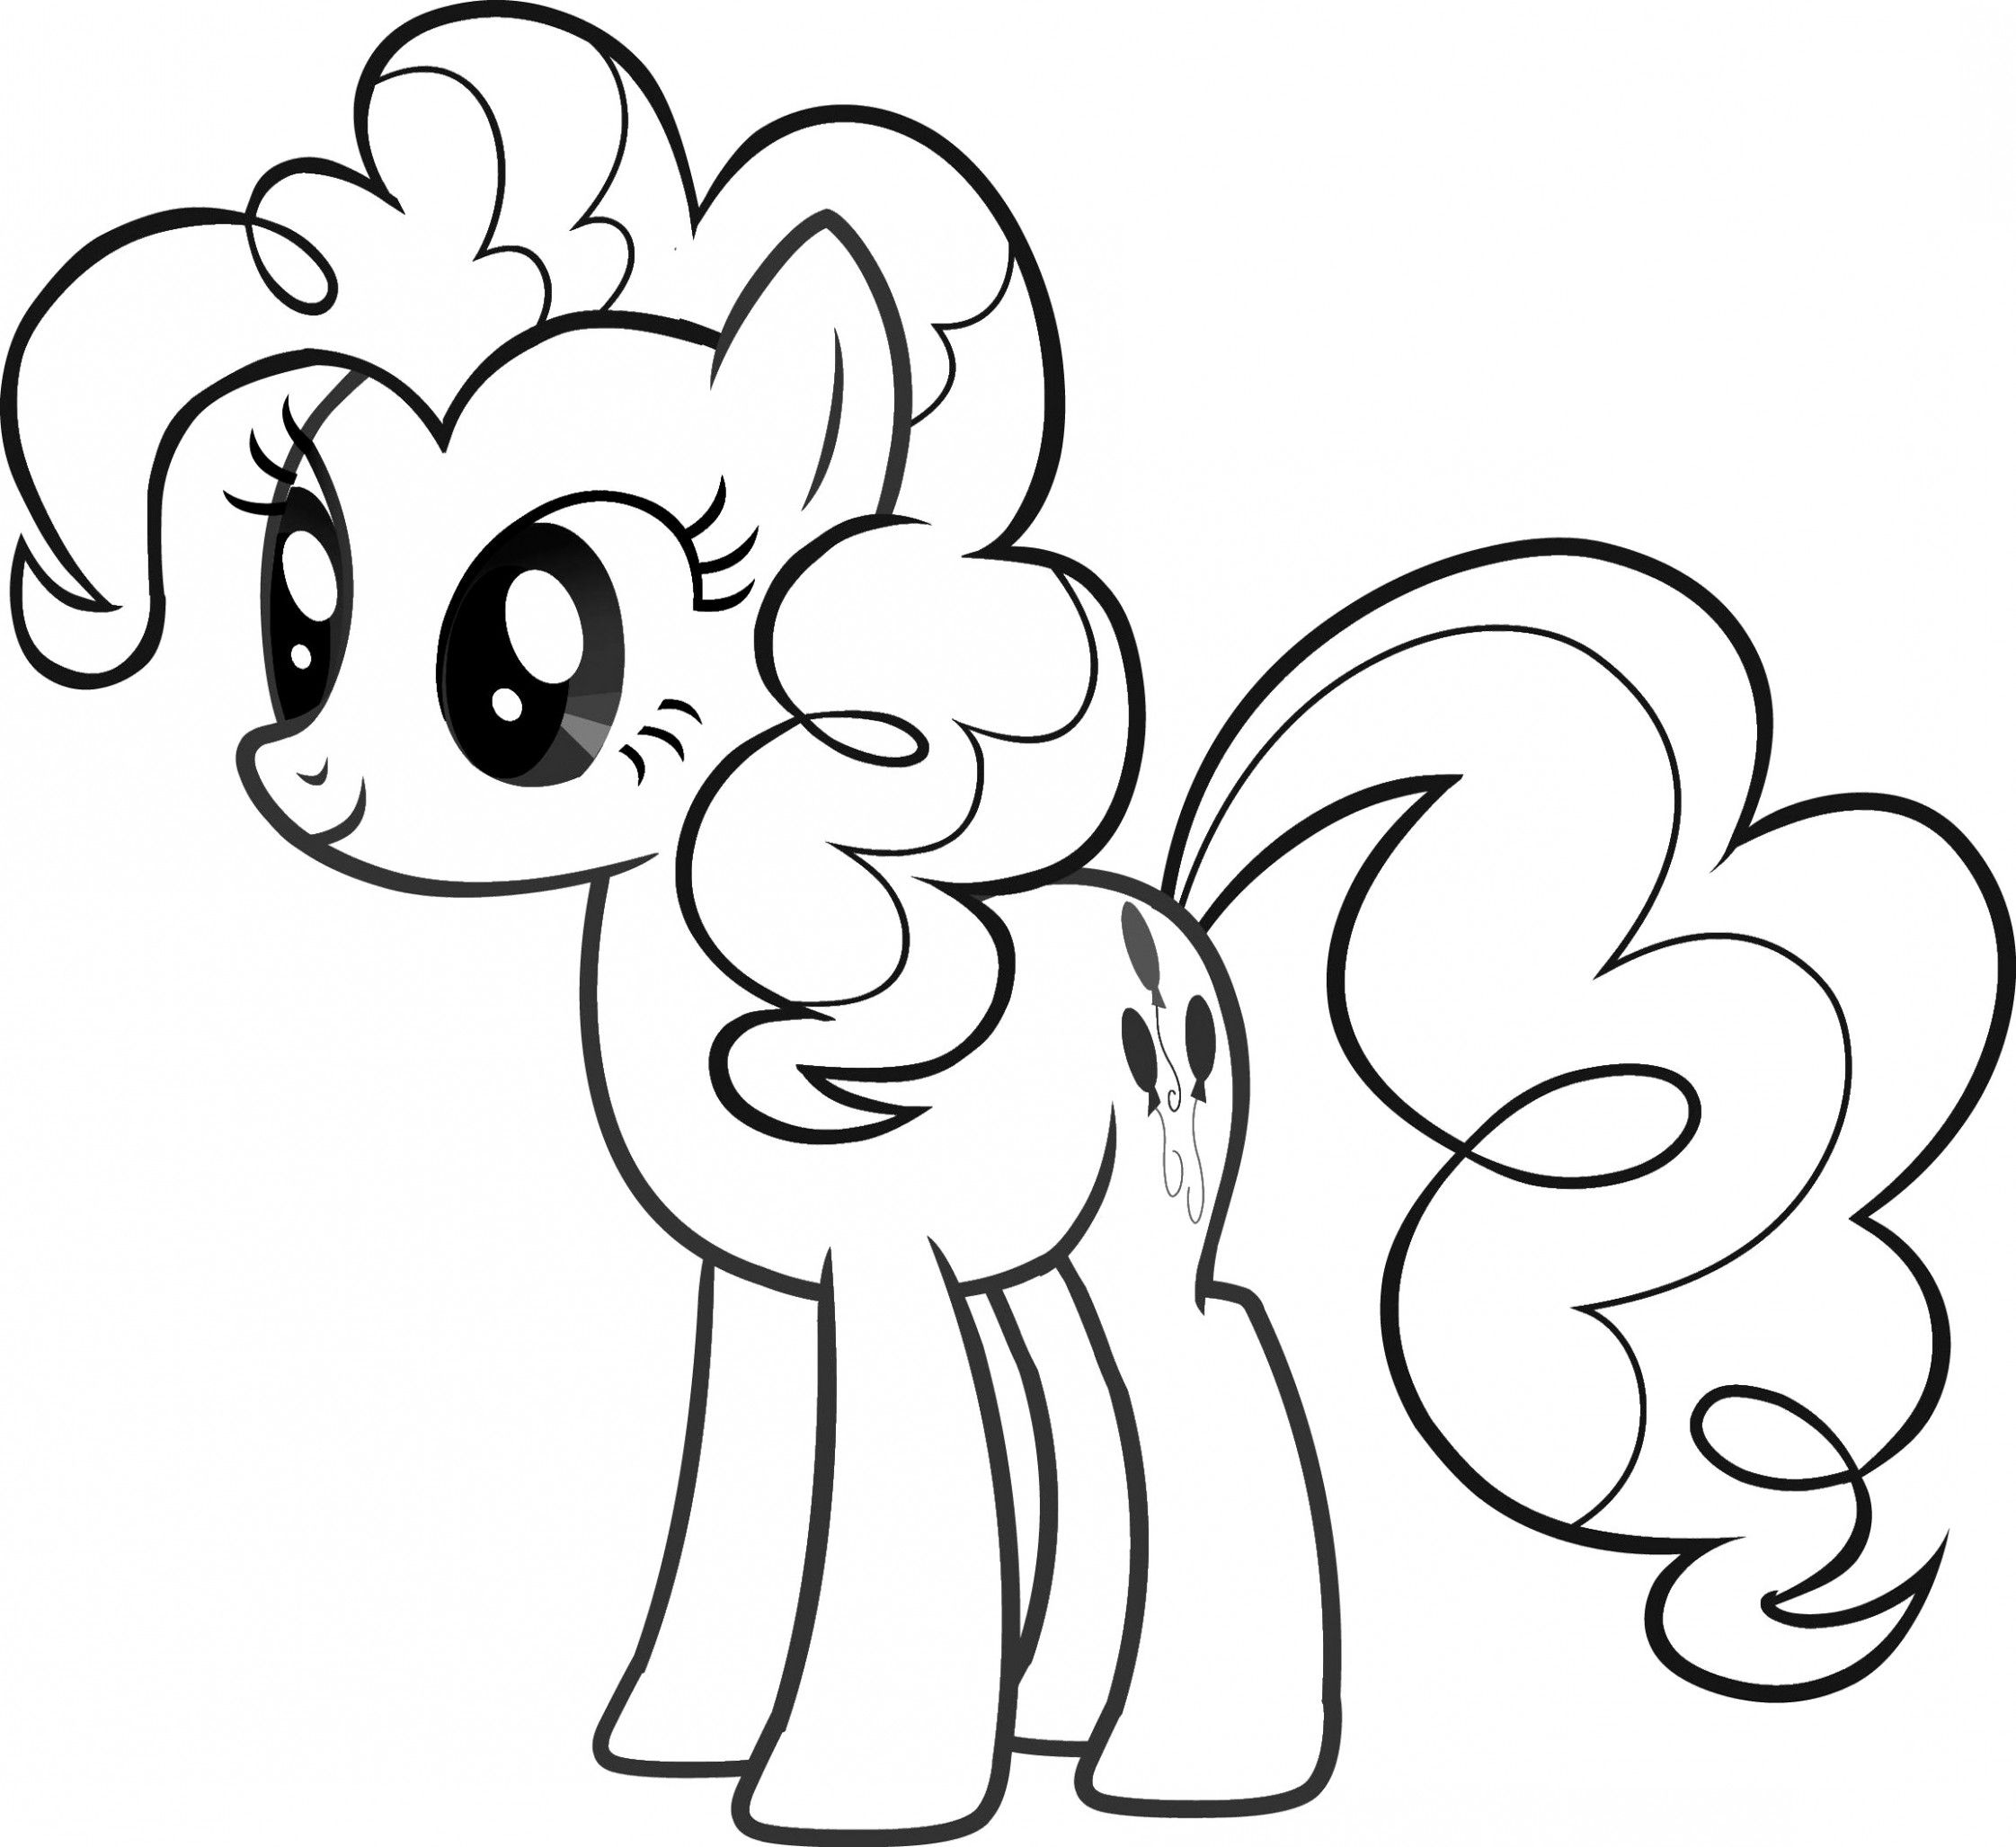 The Story Of My Little Pony Fluttershy Coloring Pages Has Just Gone Viral Color Unicorn Coloring Pages My Little Pony Coloring Kids Printable Coloring Pages